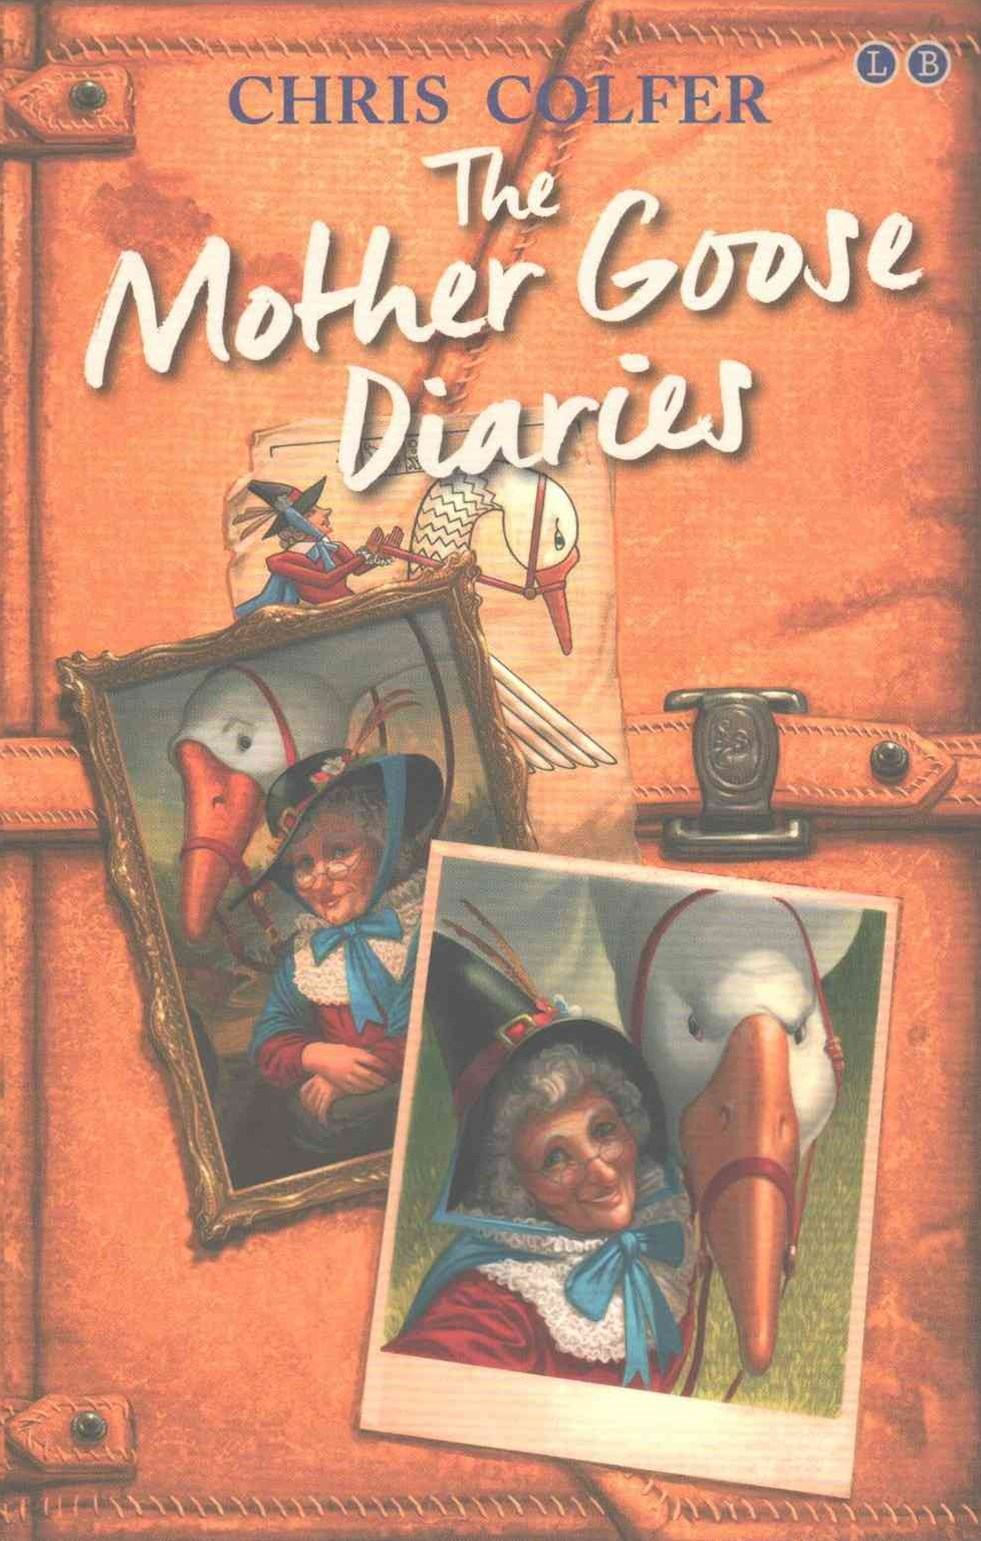 The Land of Stories: The Mother Goose Diaries